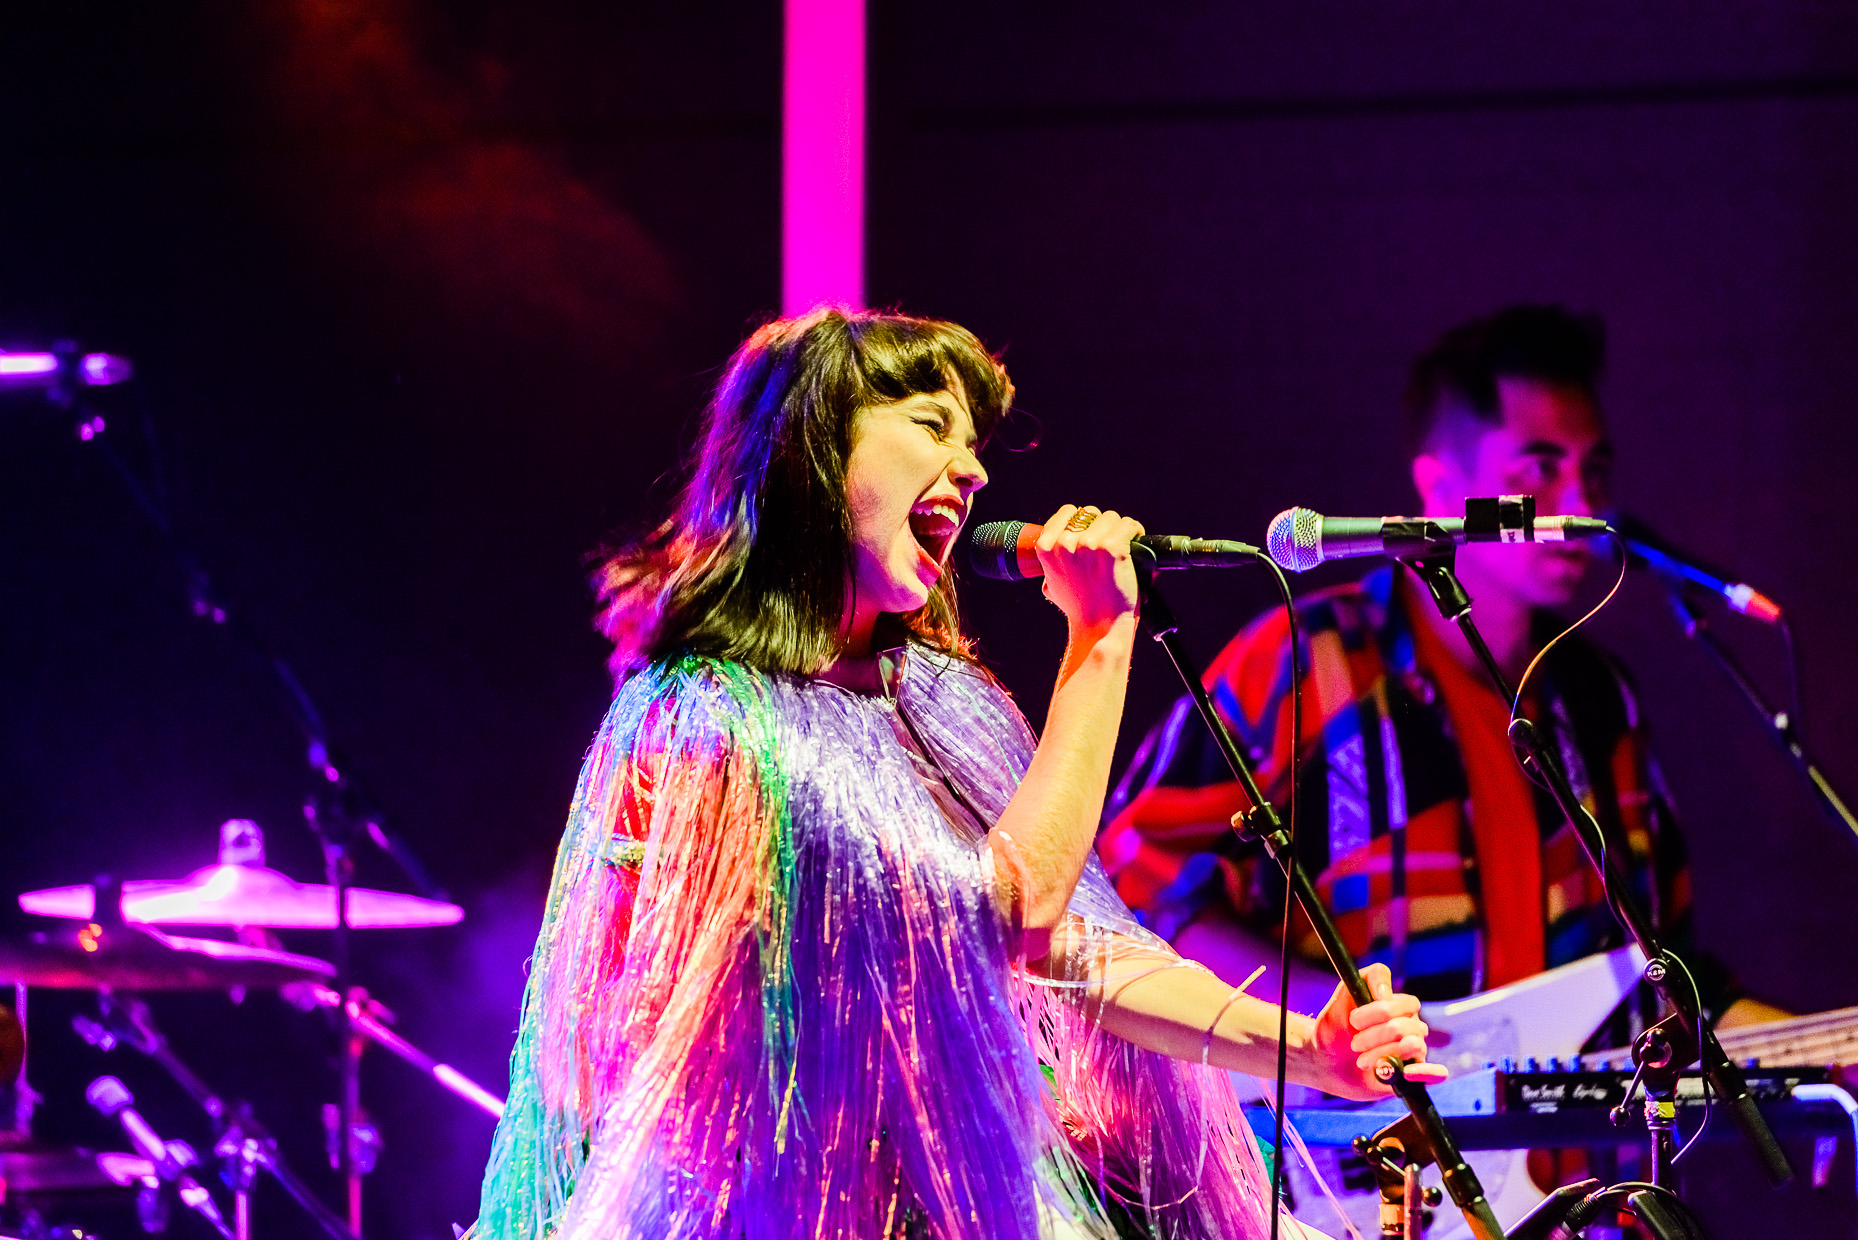 Kimbra-Belmont-Austin-Music-Commercial-Photographer.jpg